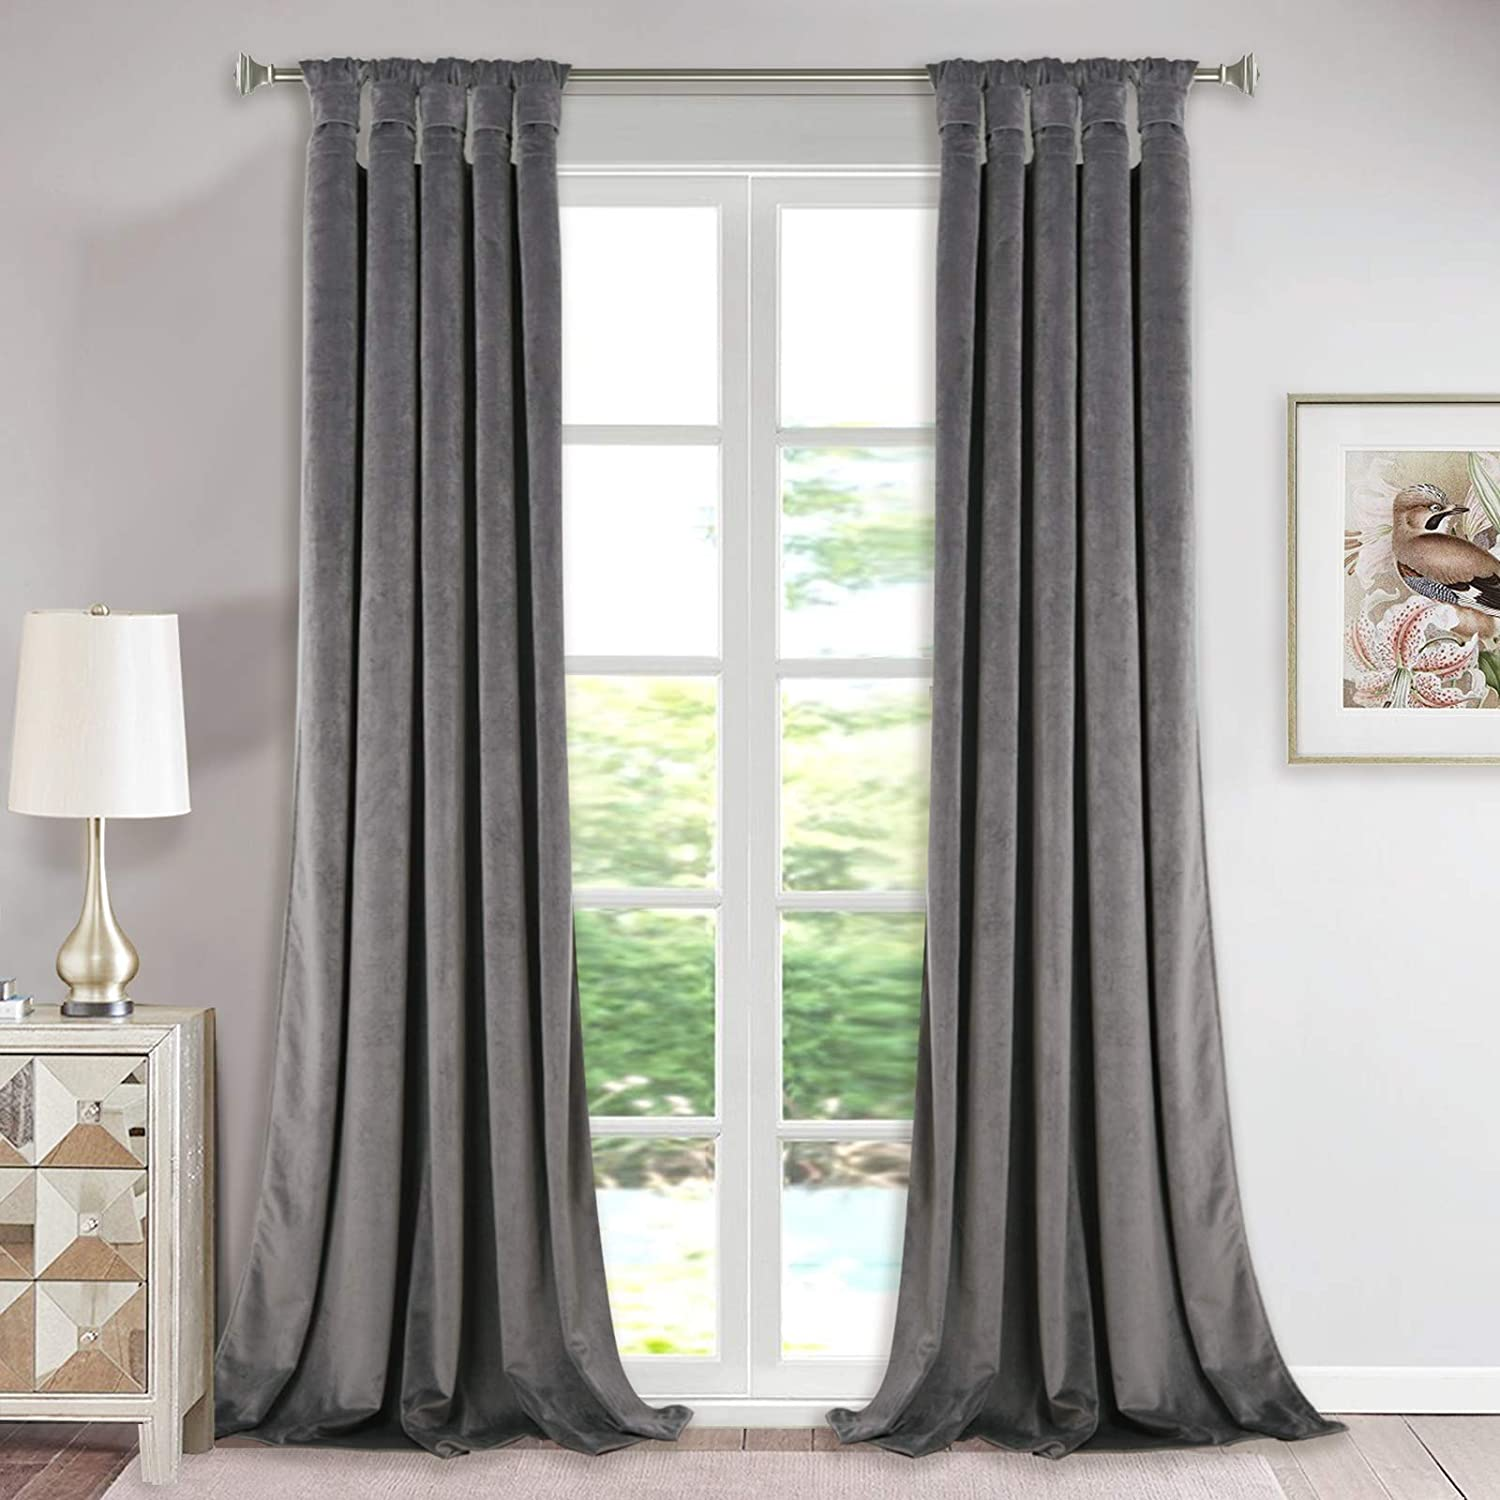 Extra Long Velvet Curtains Pair Super Soft Plush Velvet Drapes With Tab Top Knotted Design Room Darkening Curtain Panels For Living Room Sliding Glass Door Grey W52 By L108 Inch Set Of